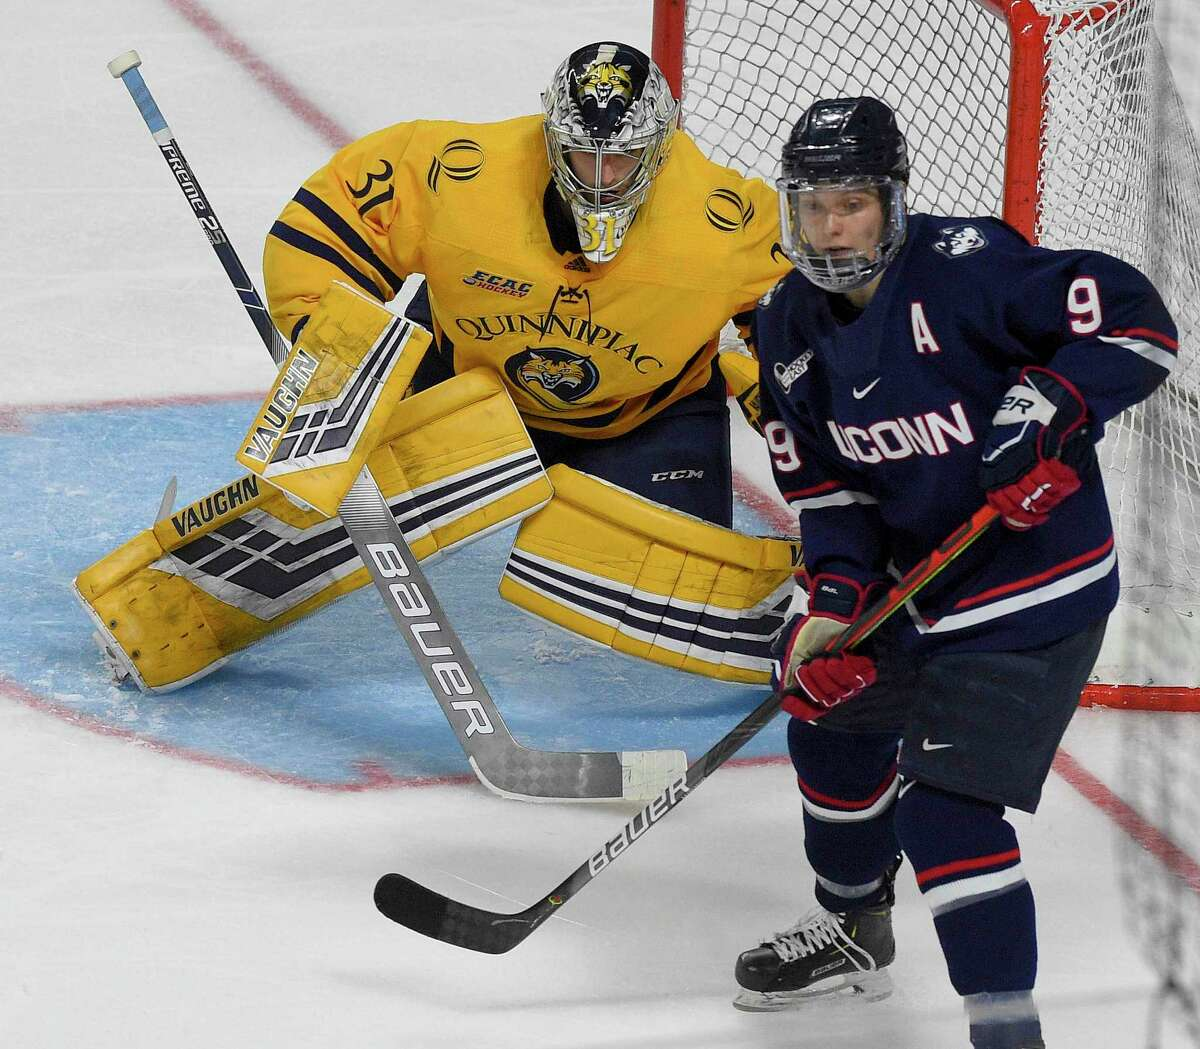 Quinnipiac's goalie Keith Petruzzelli (31) defends the goal against UConn's Alexander Payusov (9) in the second period of the 2020 Connecticut Ice Festival at Webster Arena on Jan. 25, 2020 in Bridgeport, Connecticut.